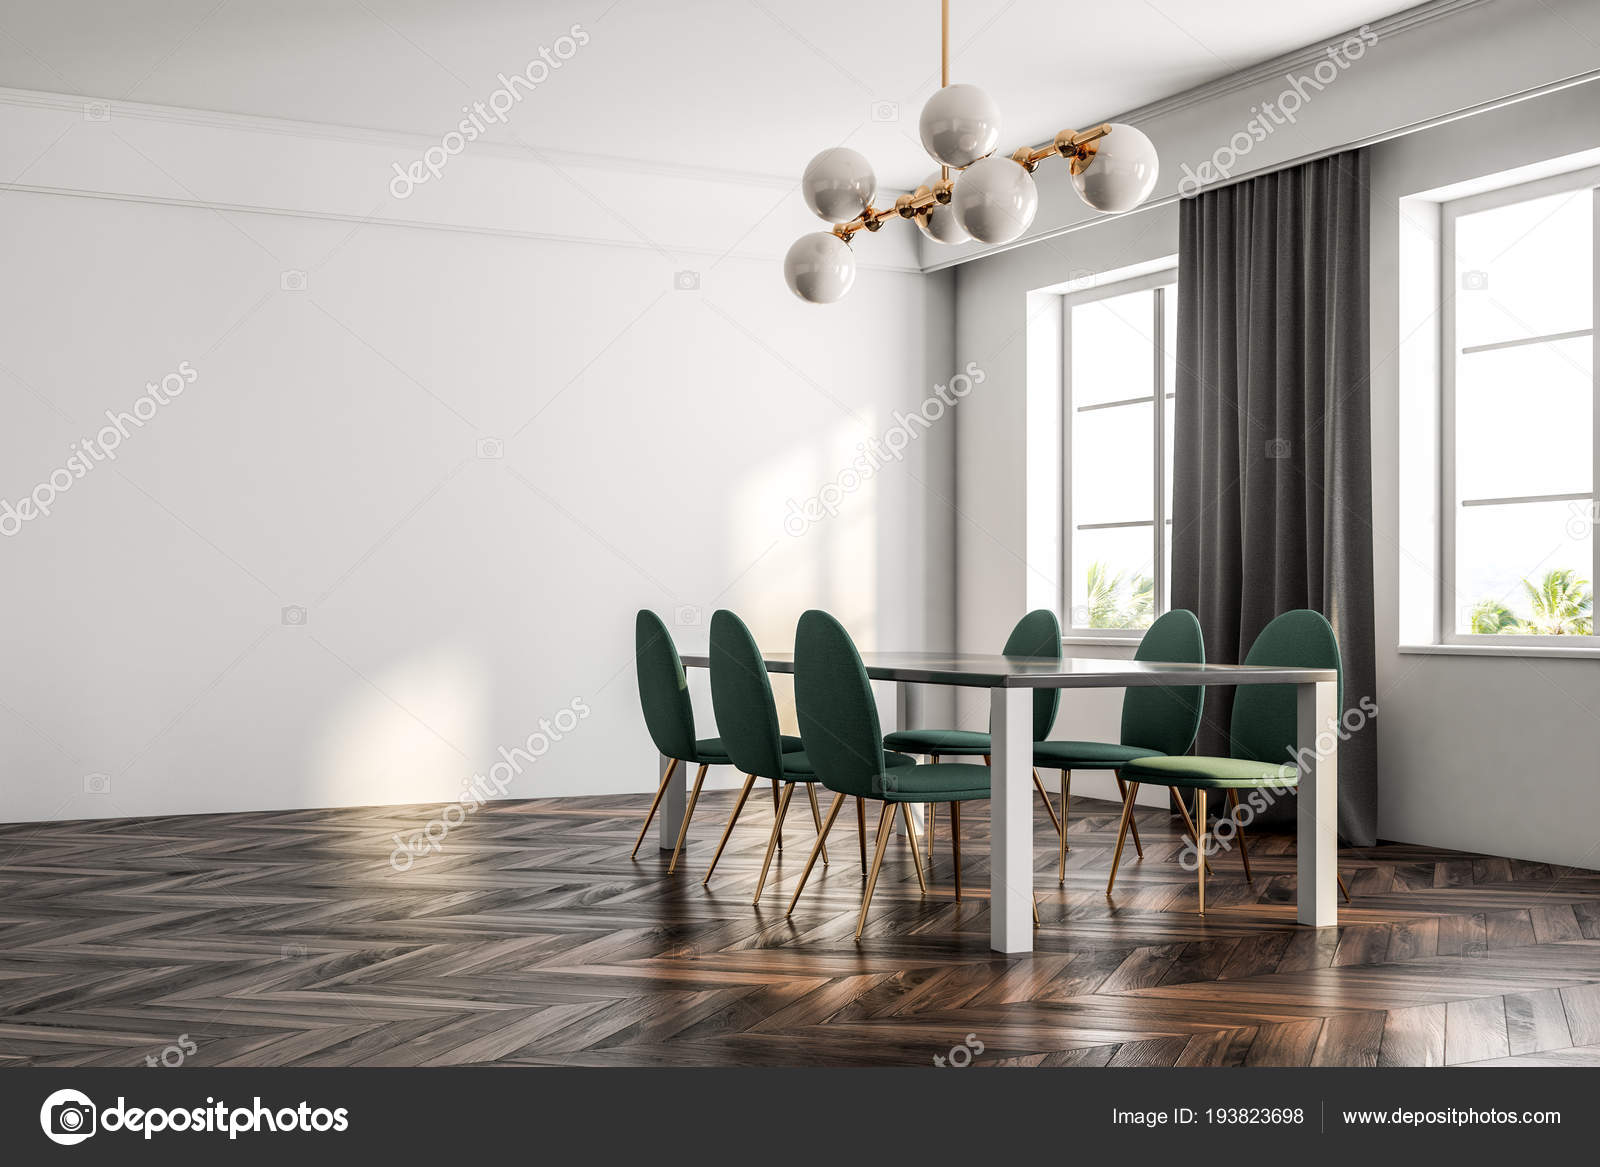 Minimalistic Dining Room Interior Dark Wooden Floor White Walls